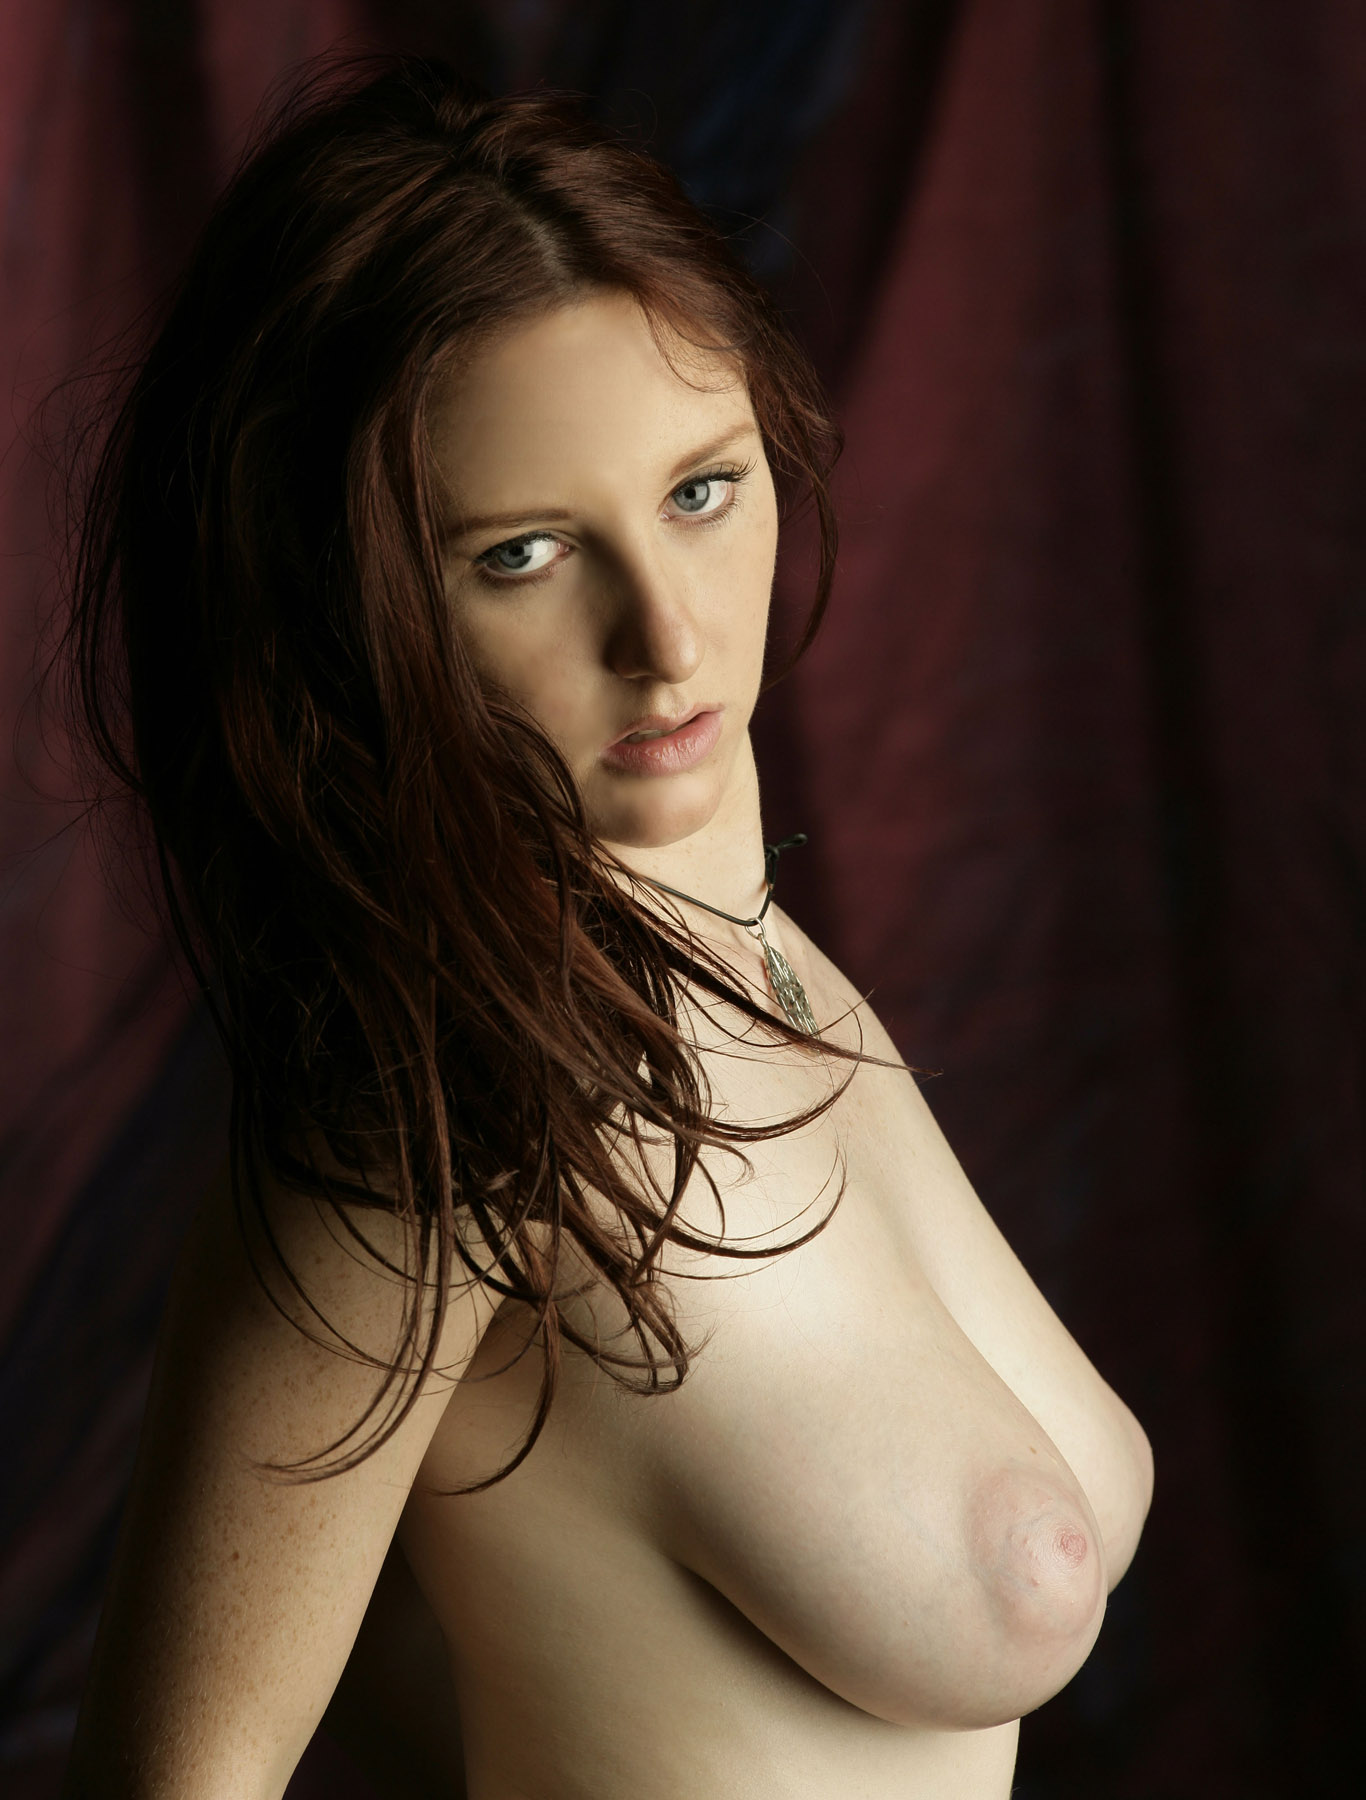 Very pregnant with twins nude